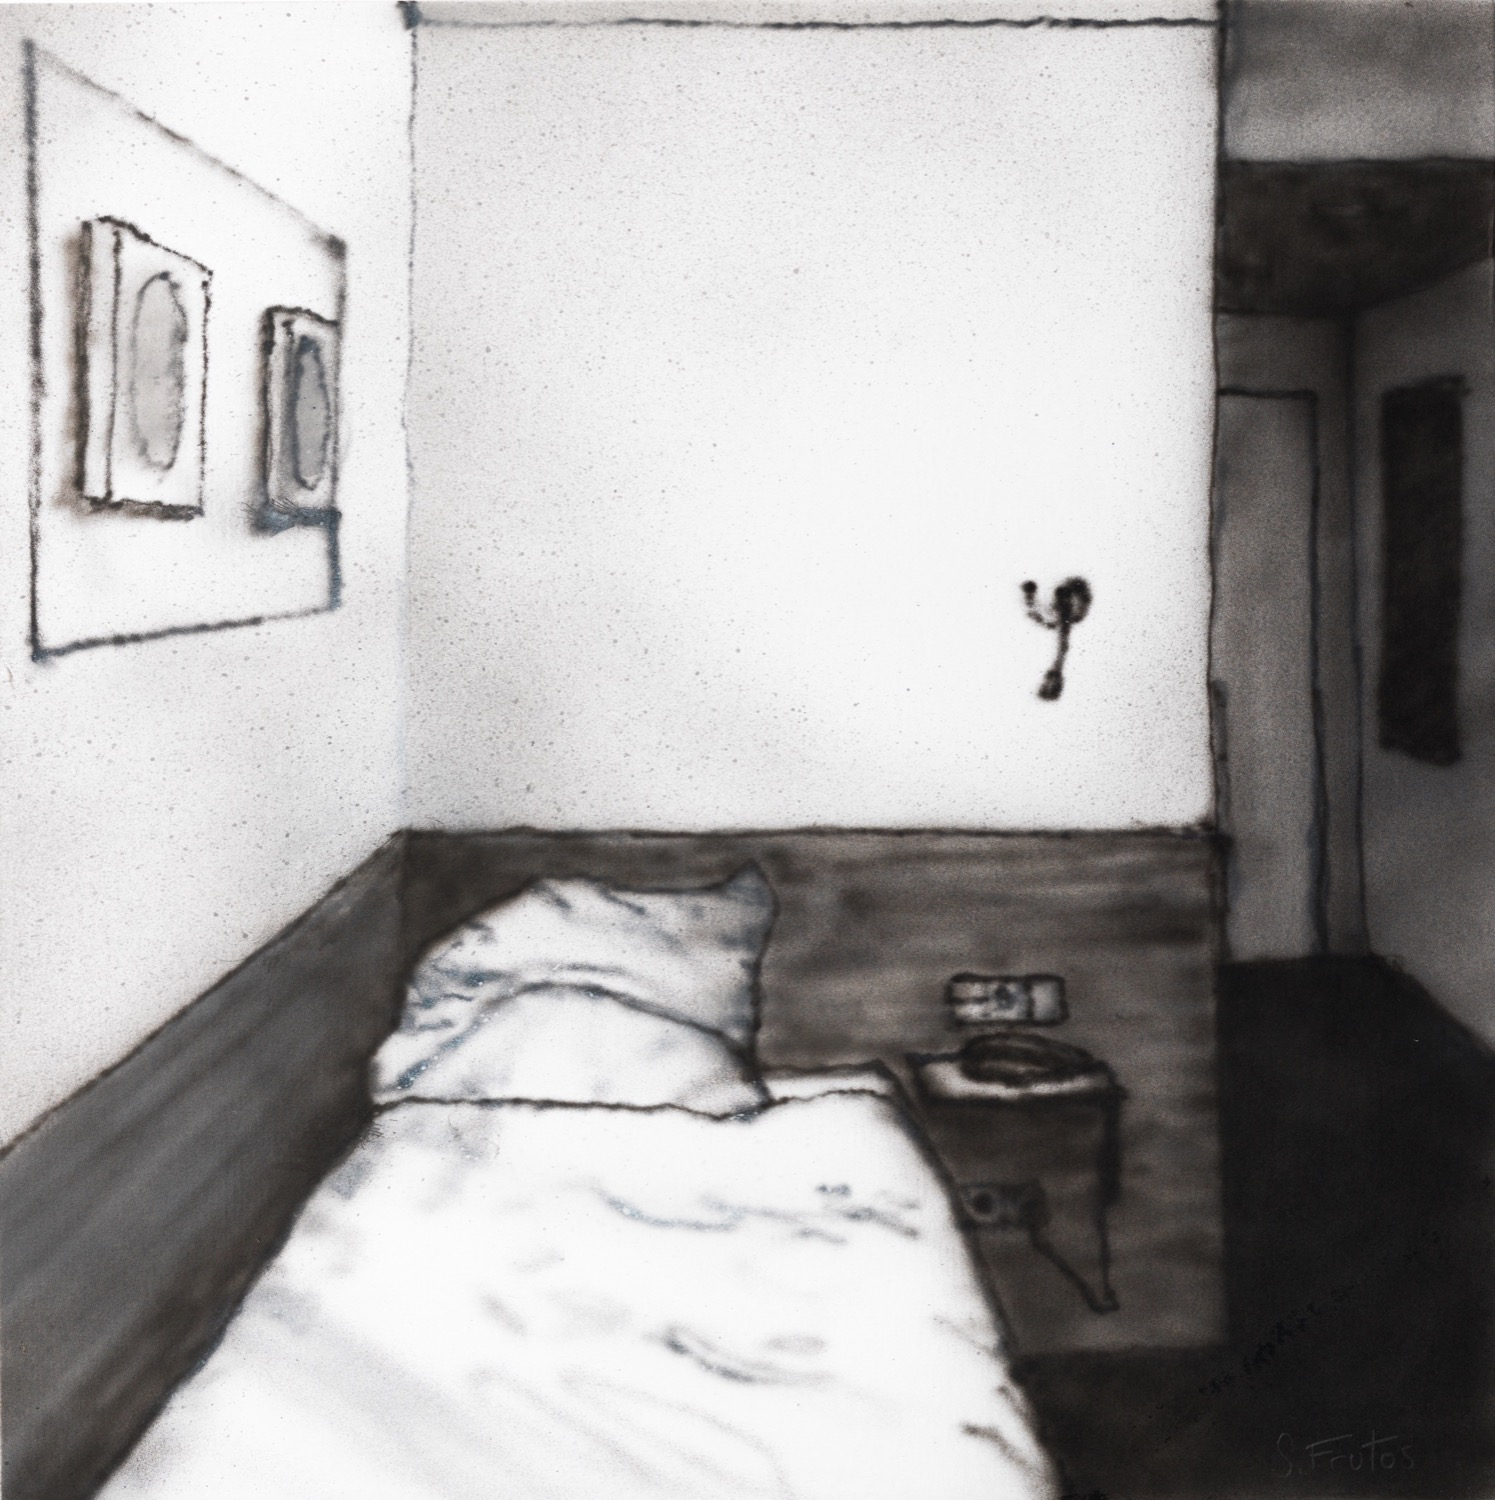 Wolfsburg, Hotel room. Ink on paper on wood, 30 x 30 cm, 2019